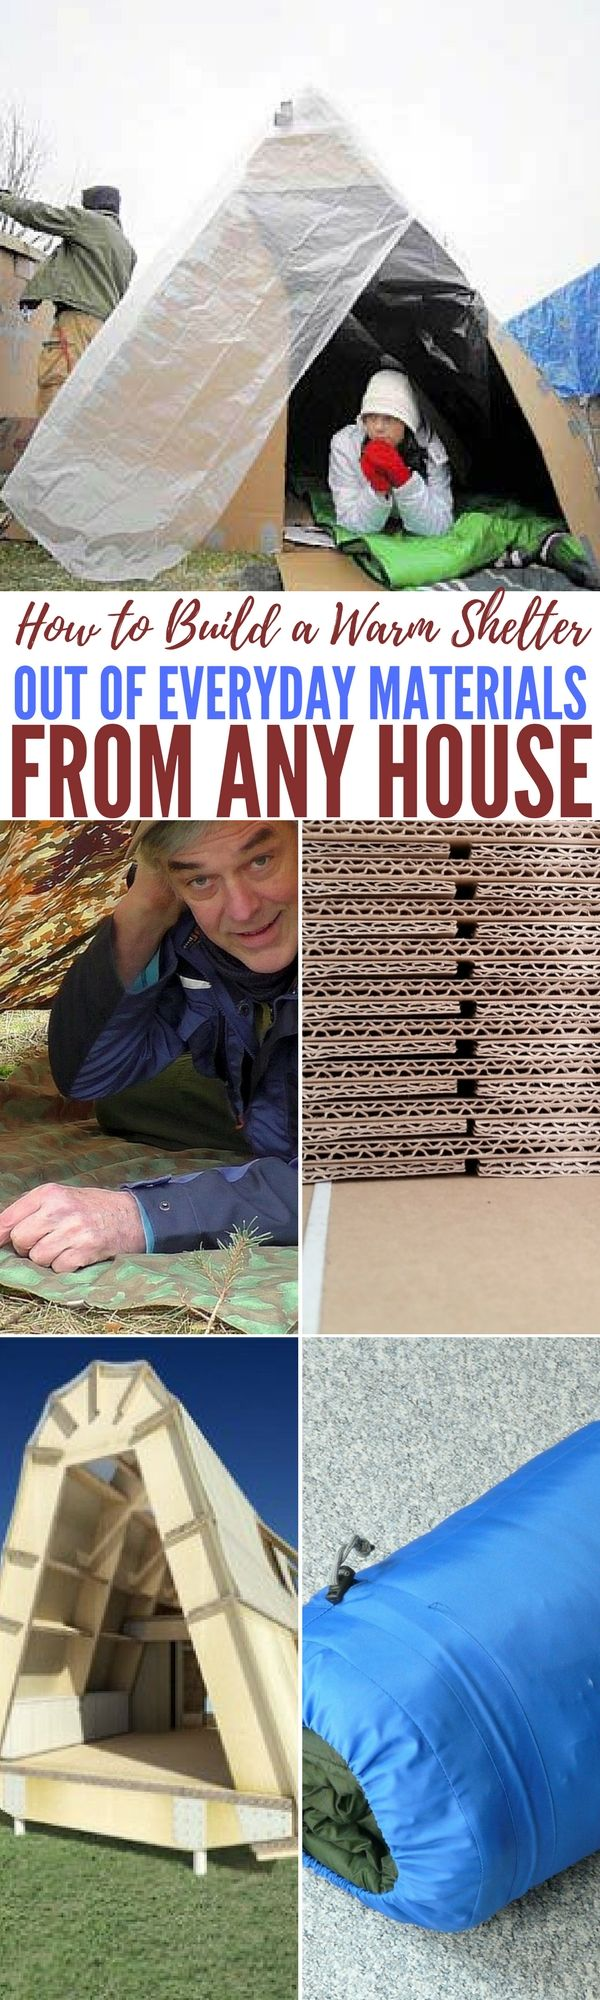 How to build a warm shelter out of everyday materials from for How to find a good builder